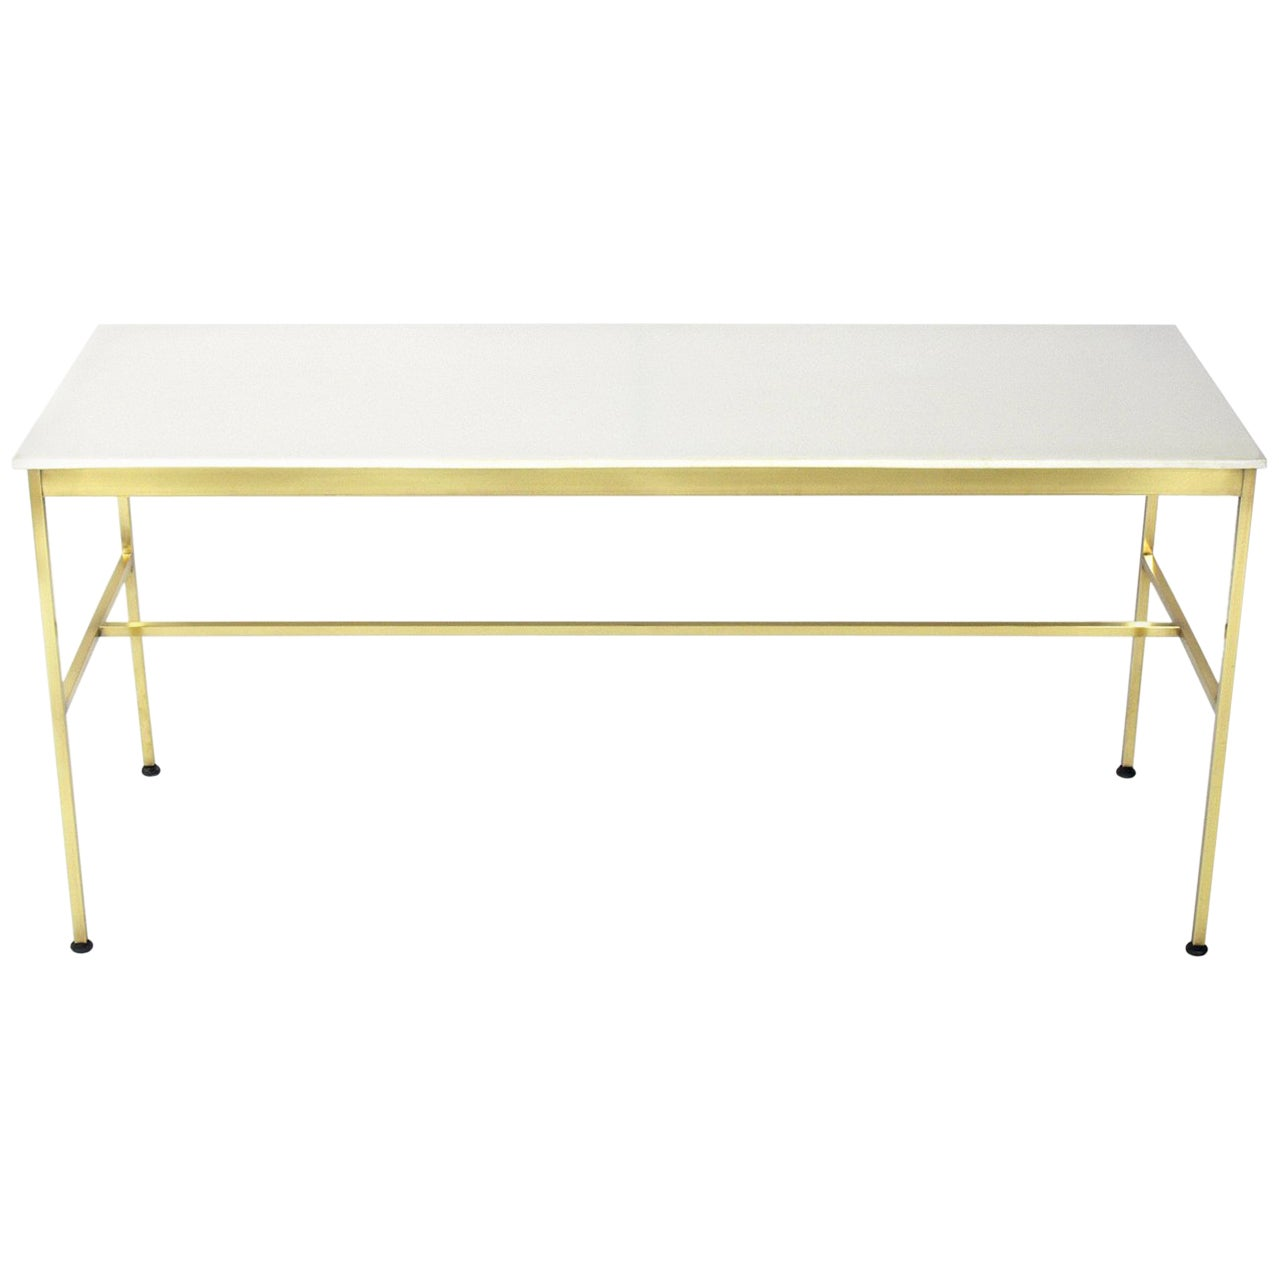 Modernist Brass and Milk Glass Console by Paul McCobb